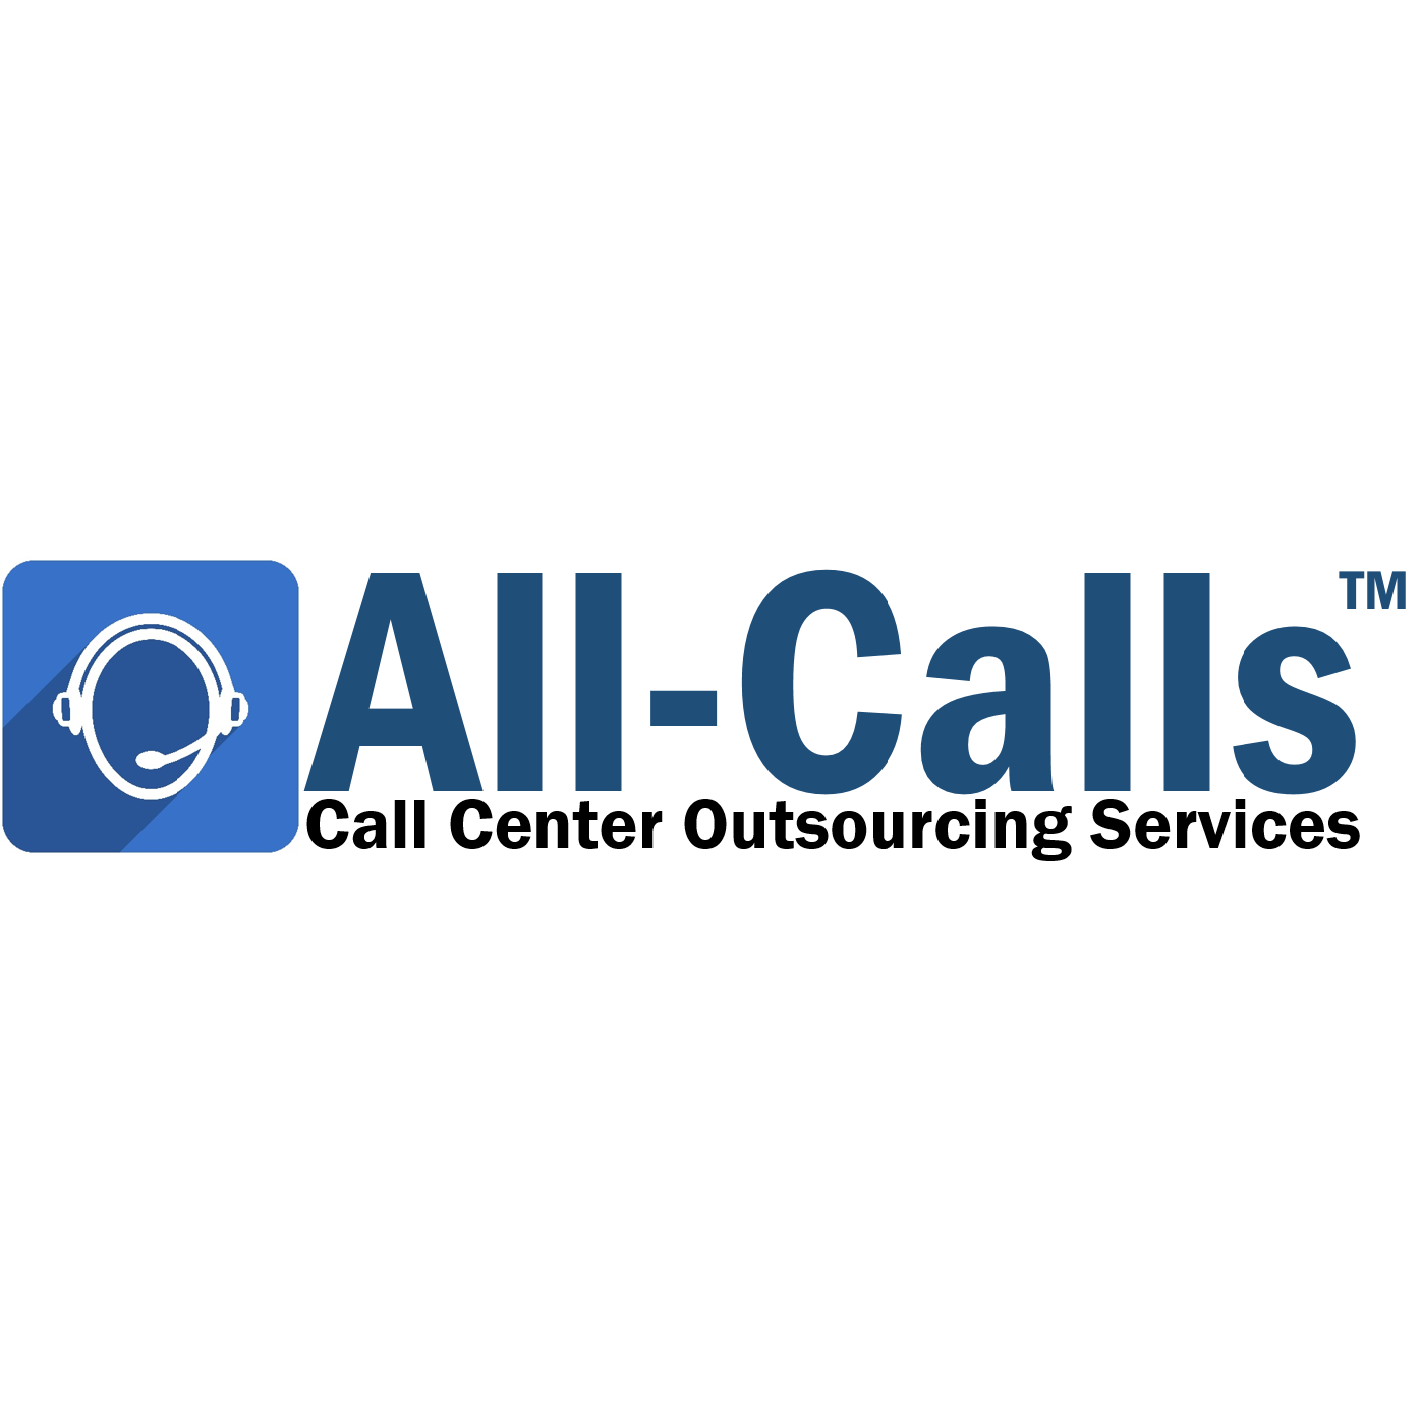 All-Calls Call Center Outsourcing